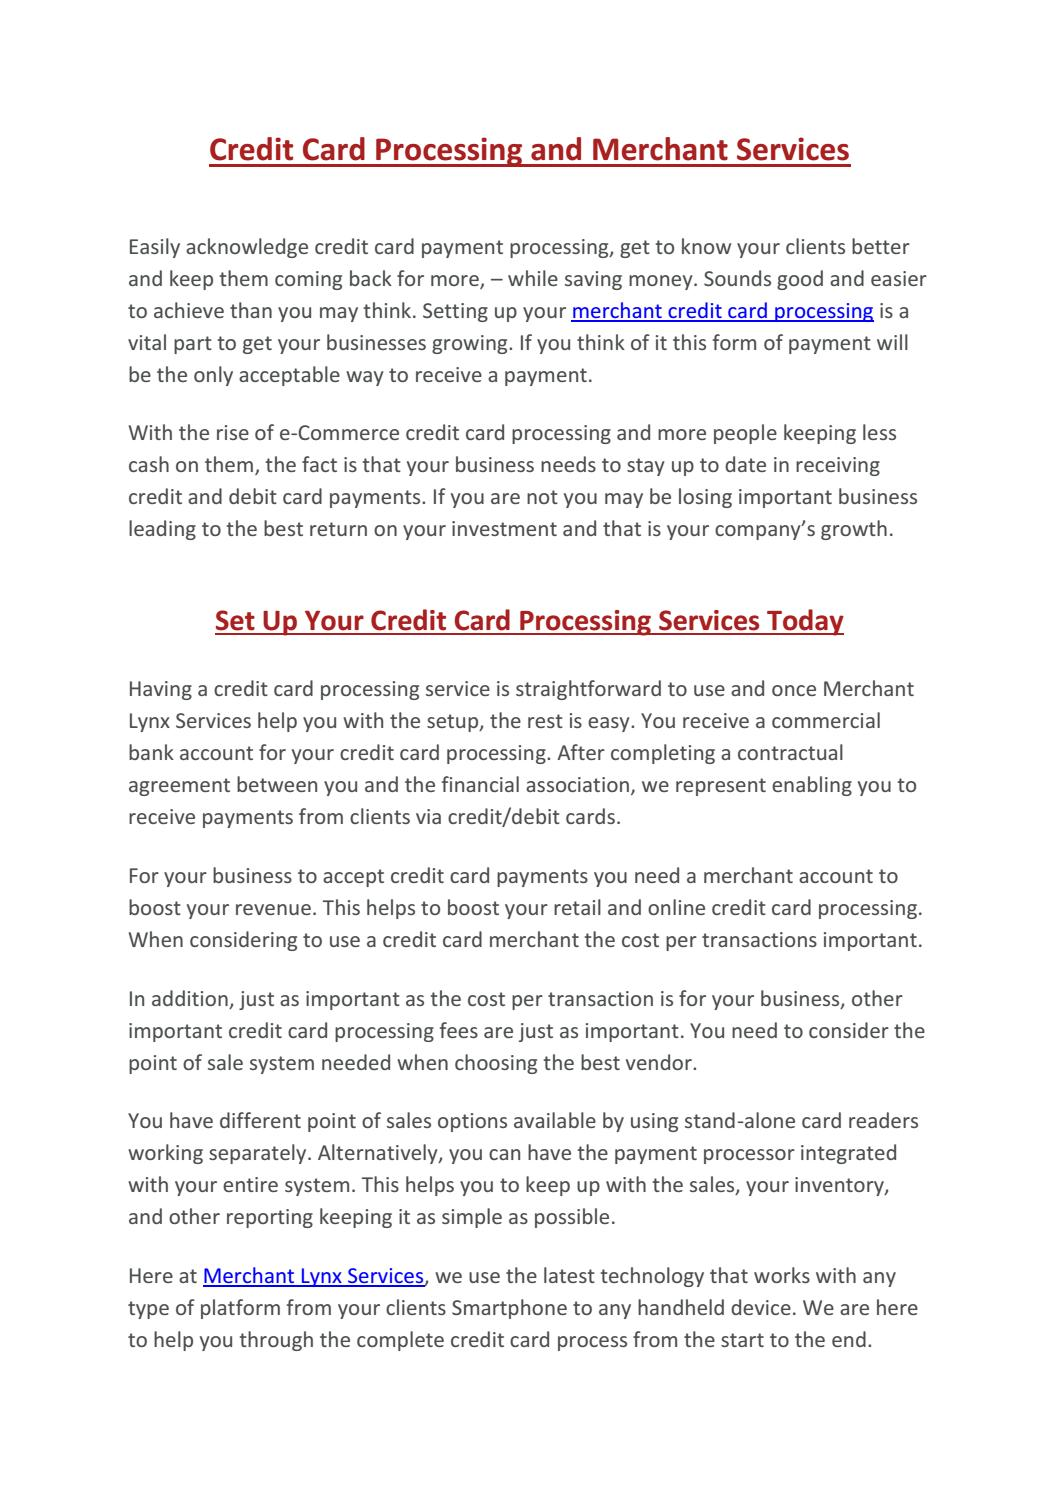 Credit card processing and merchant services by merchantlynx issuu reheart Image collections